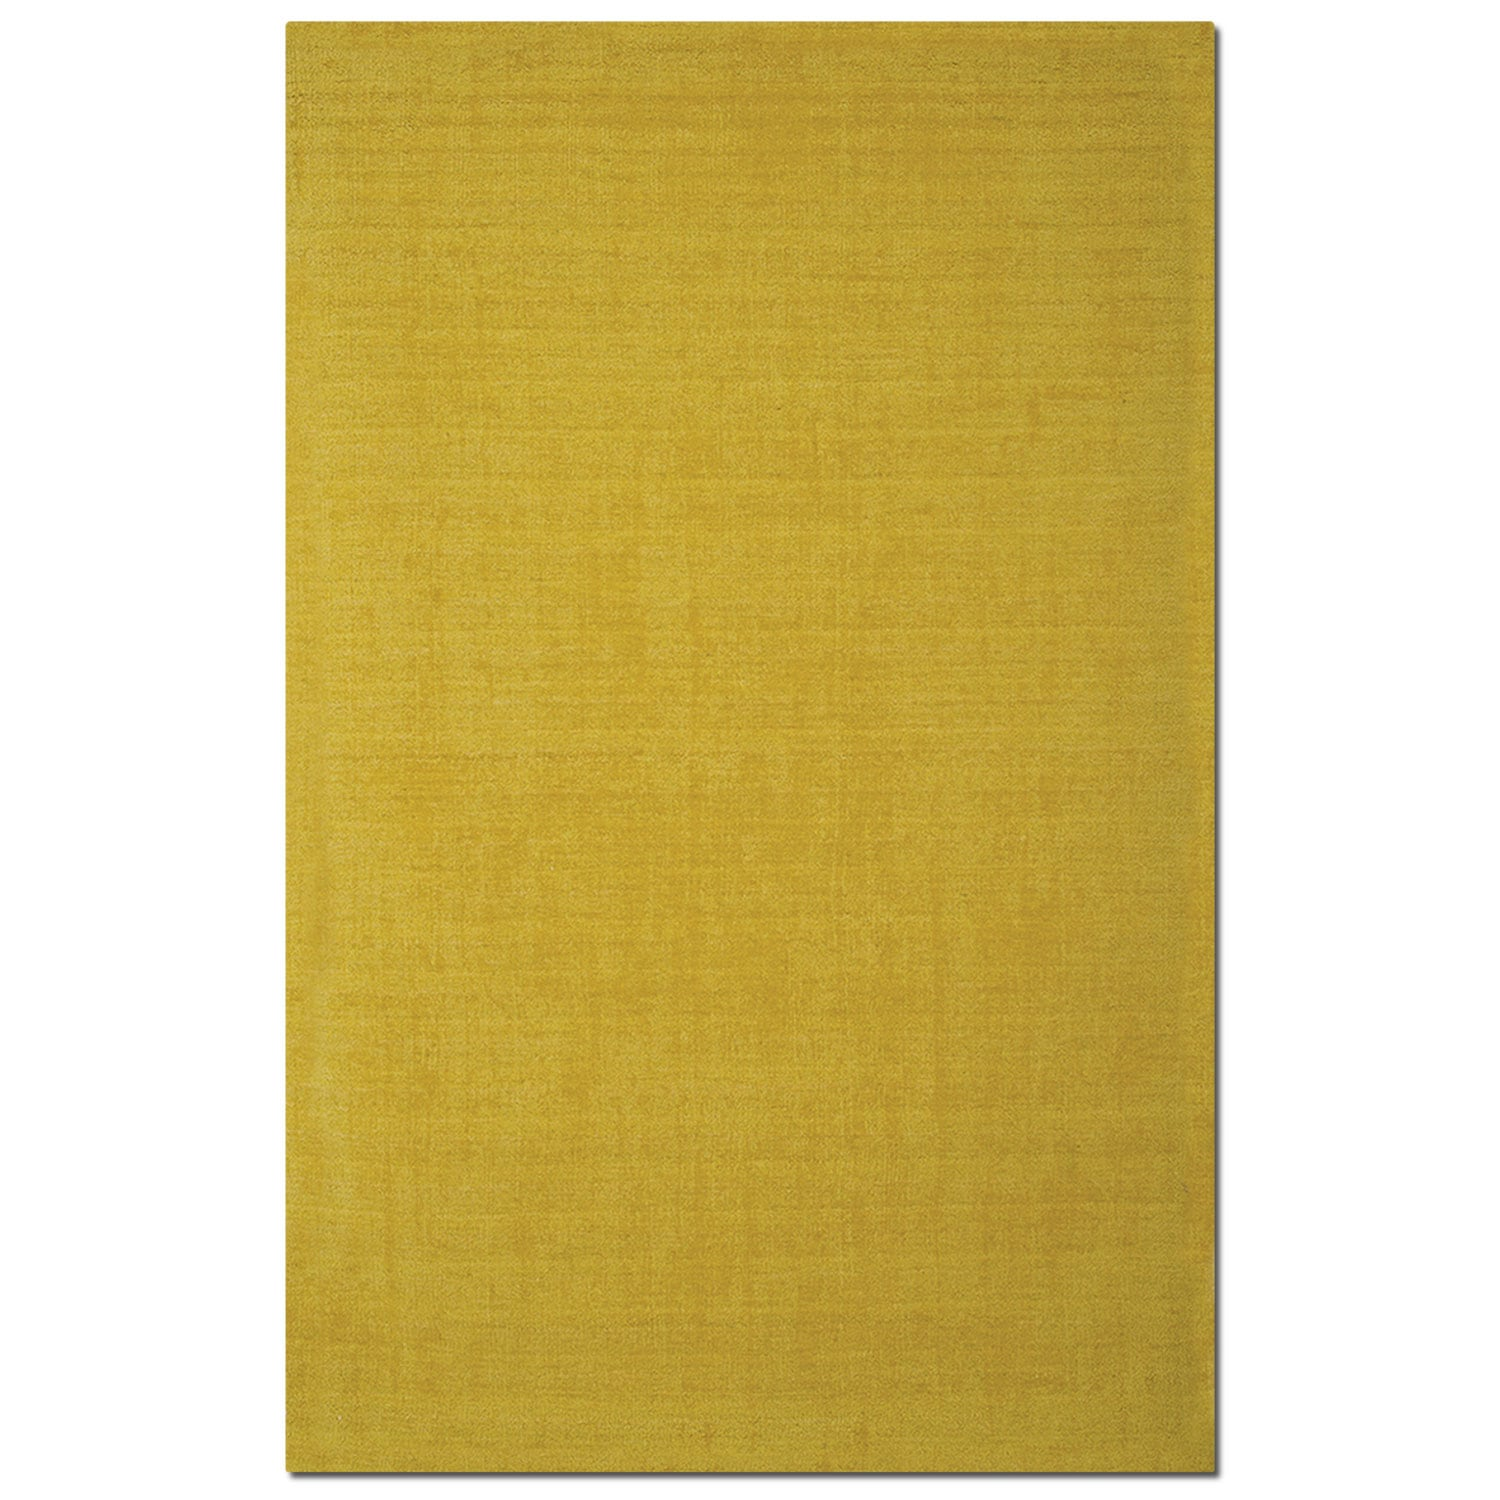 Basics 5' x 8' Area Rug - Yellow